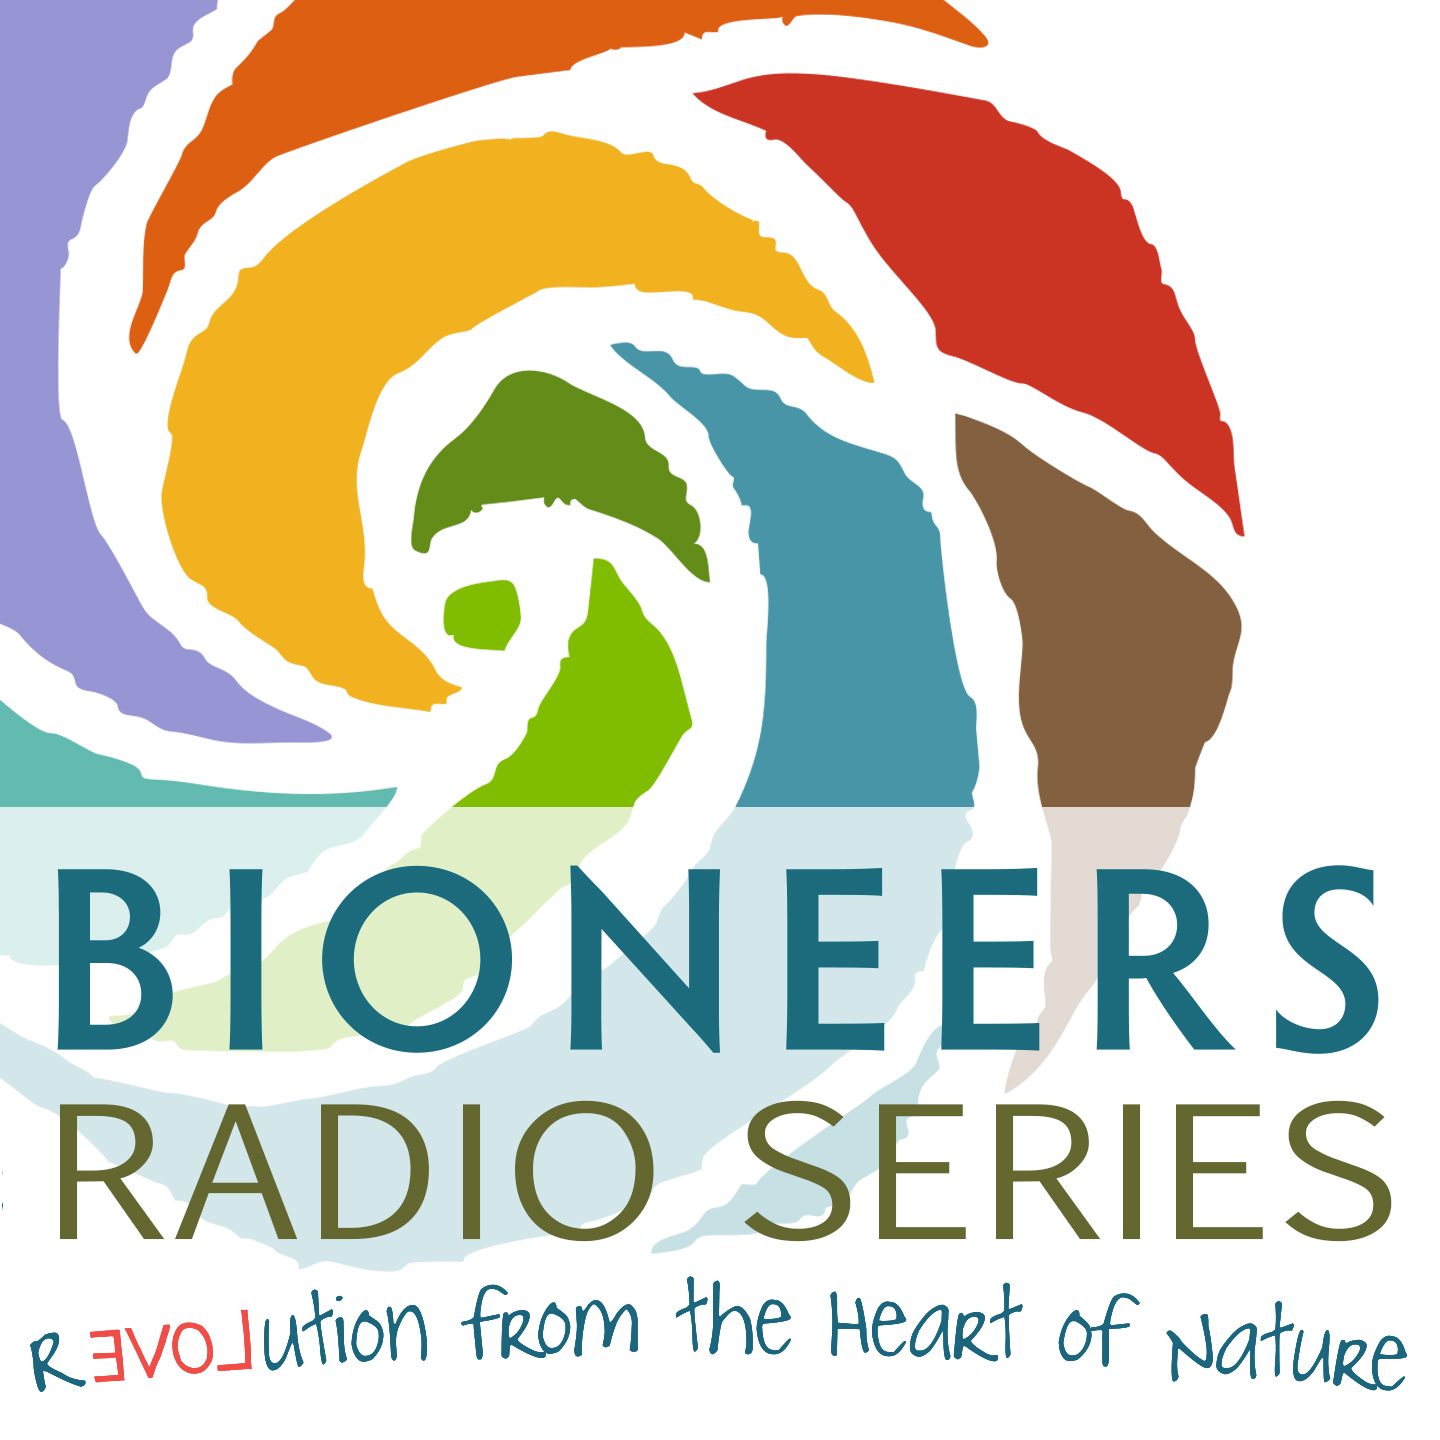 Bioneers: Revolution From the Heart of Nature | Bioneers Radio Series